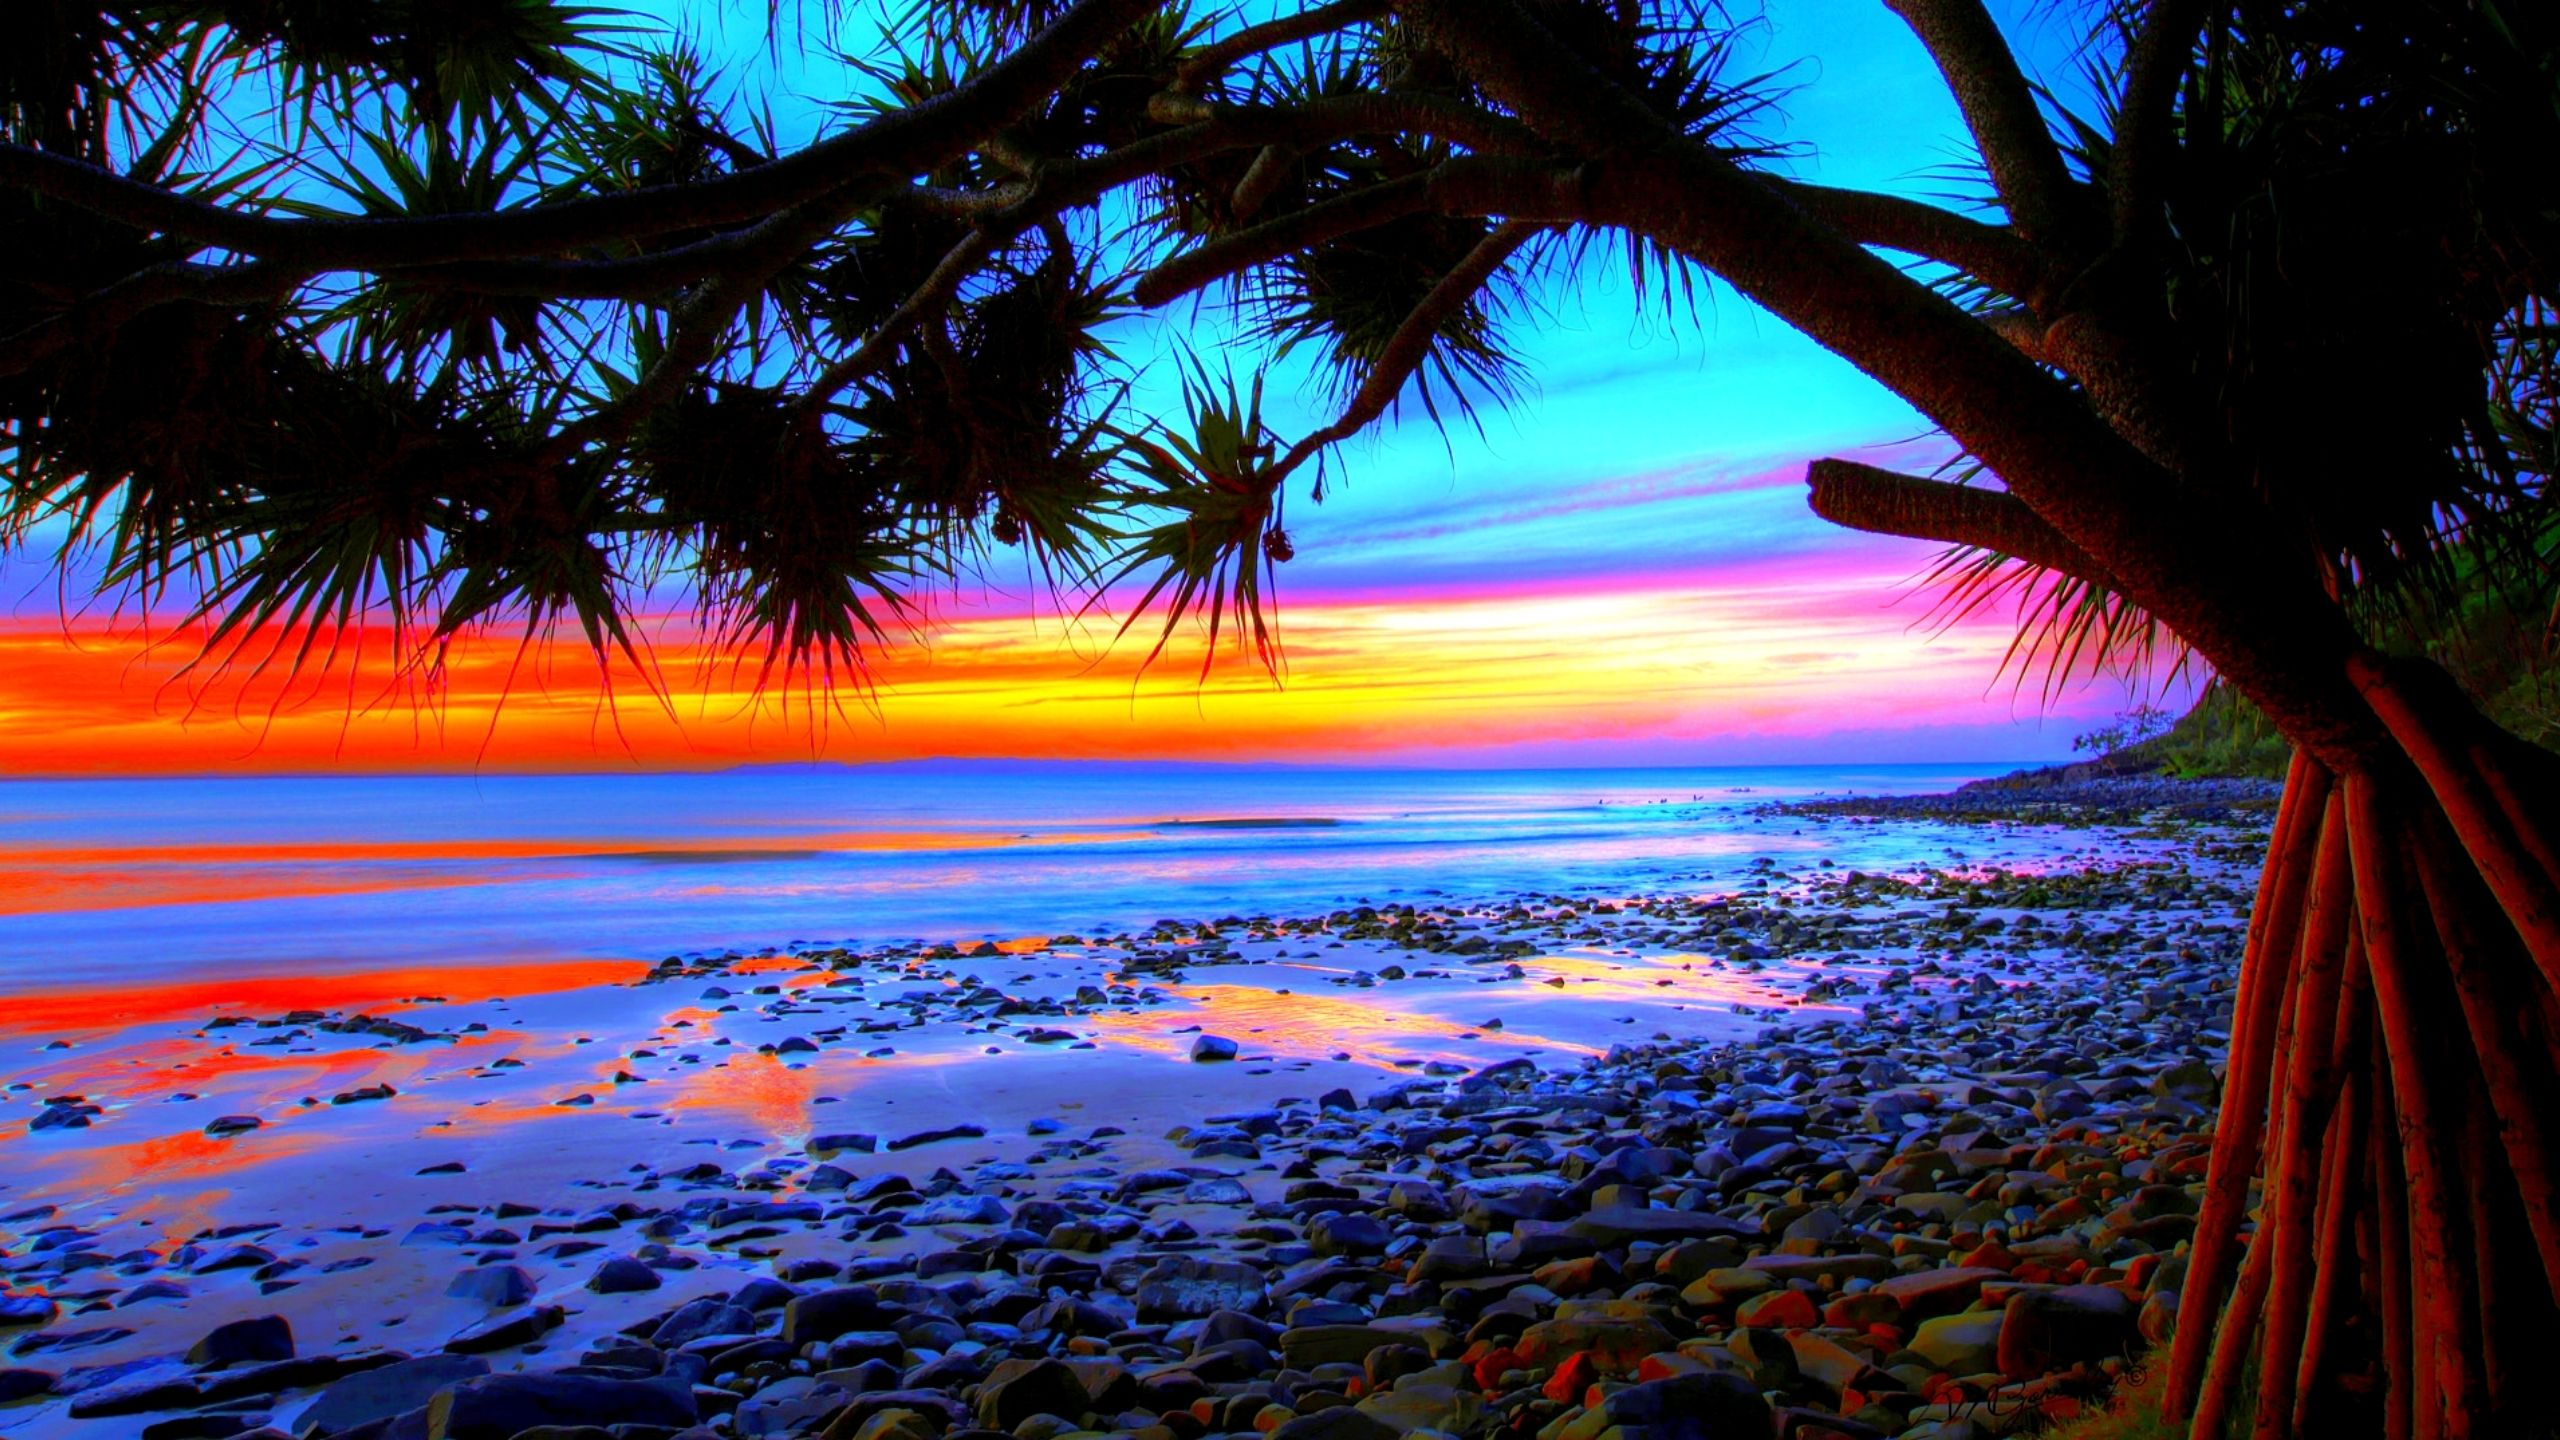 pix for > colorful beach sunsets backgrounds | sunset | pinterest